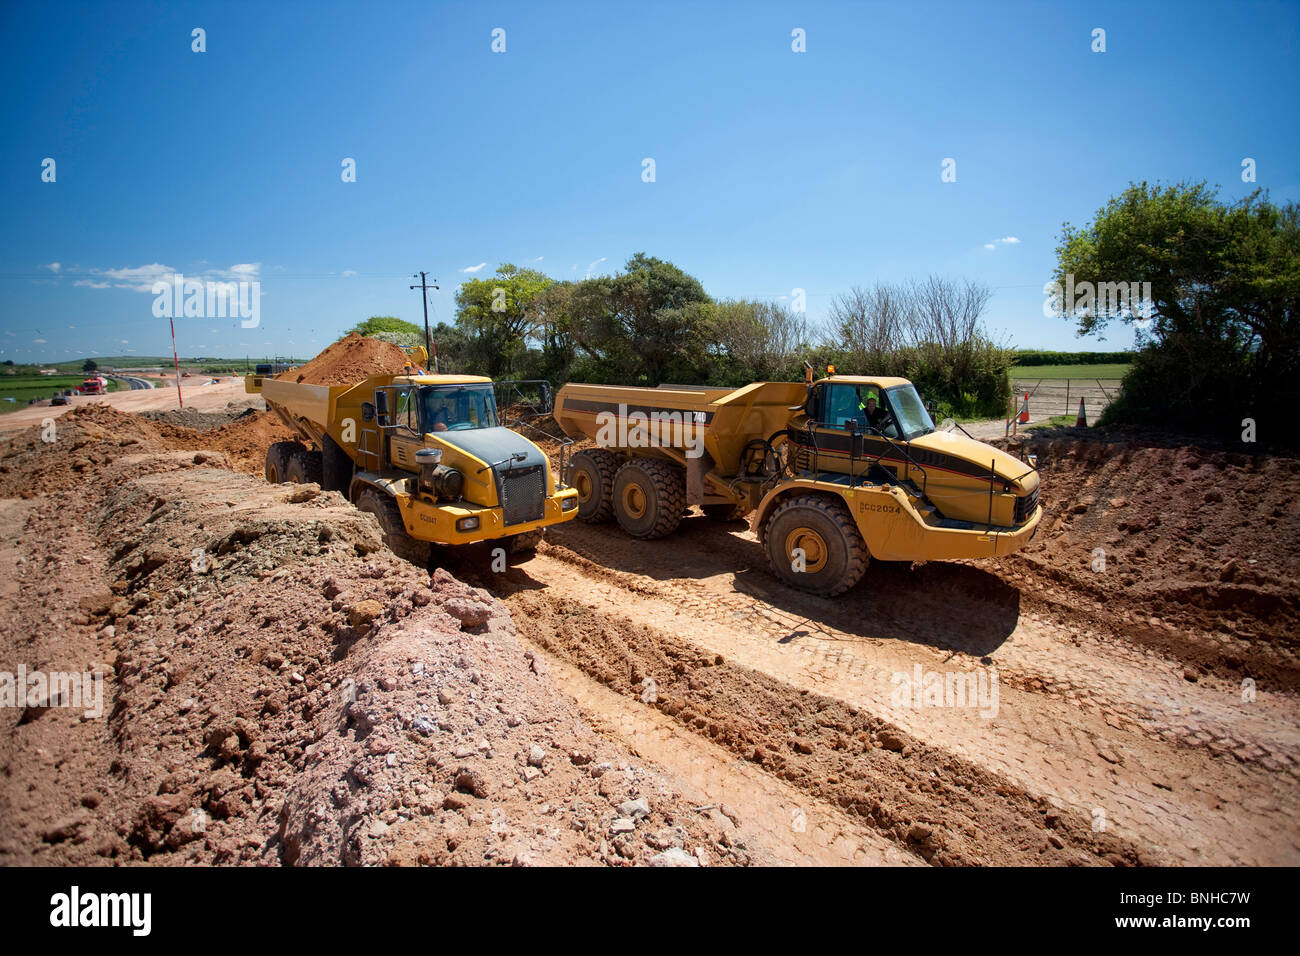 Articulated earth movers on road construction site. - Stock Image